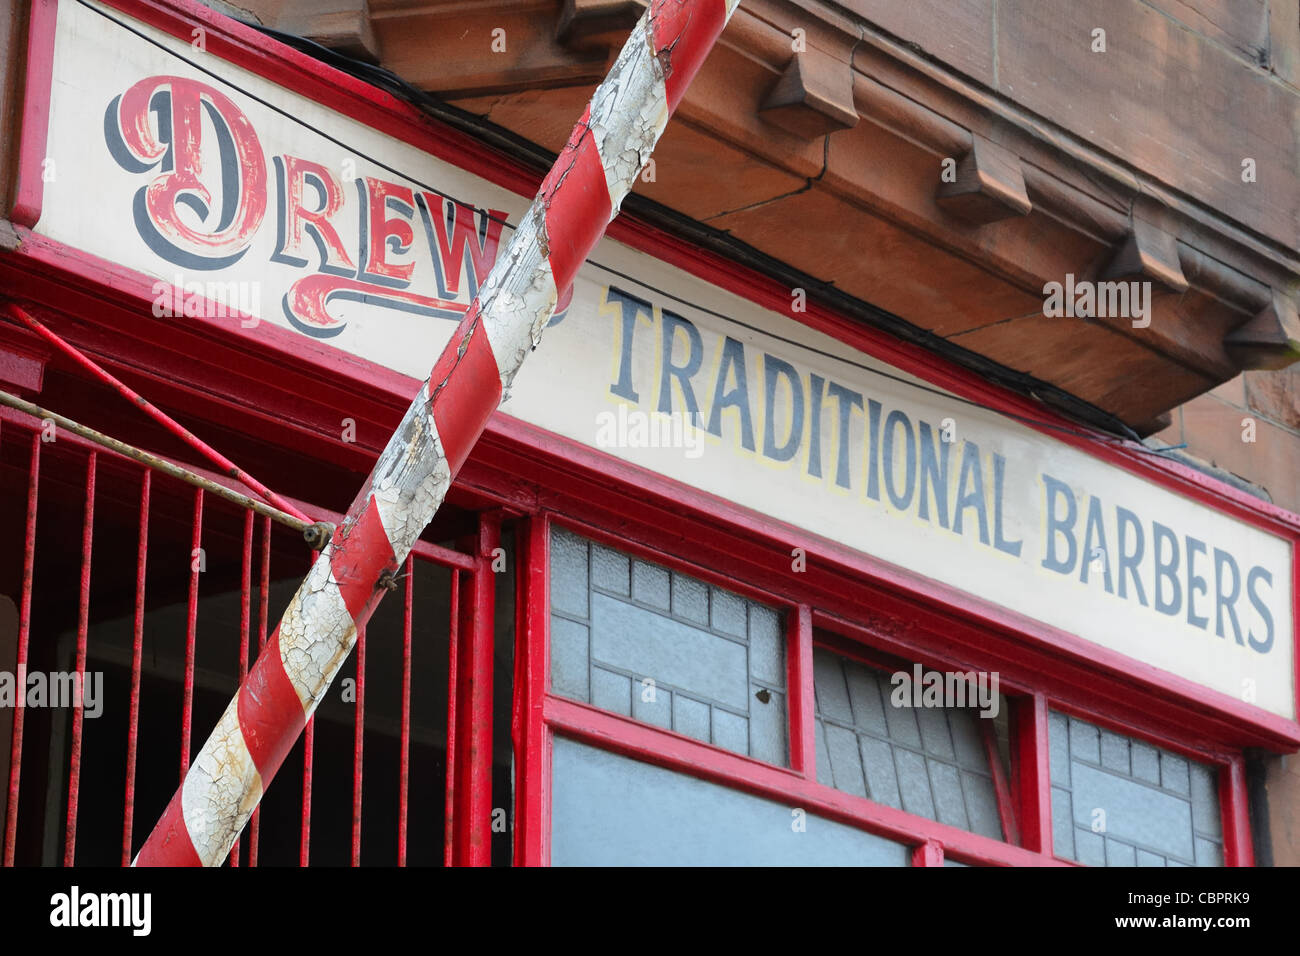 Red and white stripped pole of a traditional barbers shop. - Stock Image